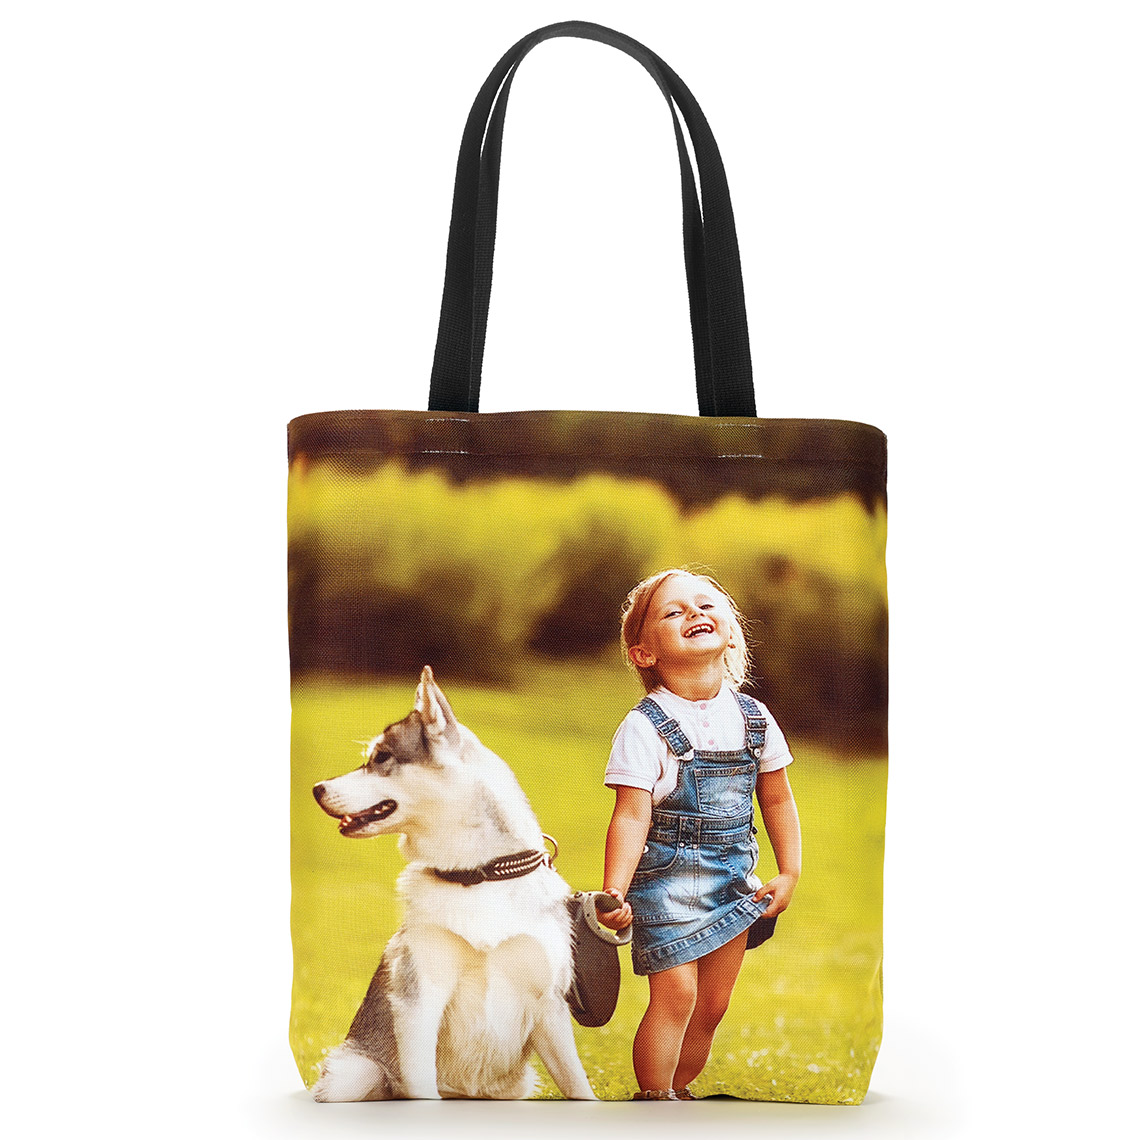 Full Image Tote Bag